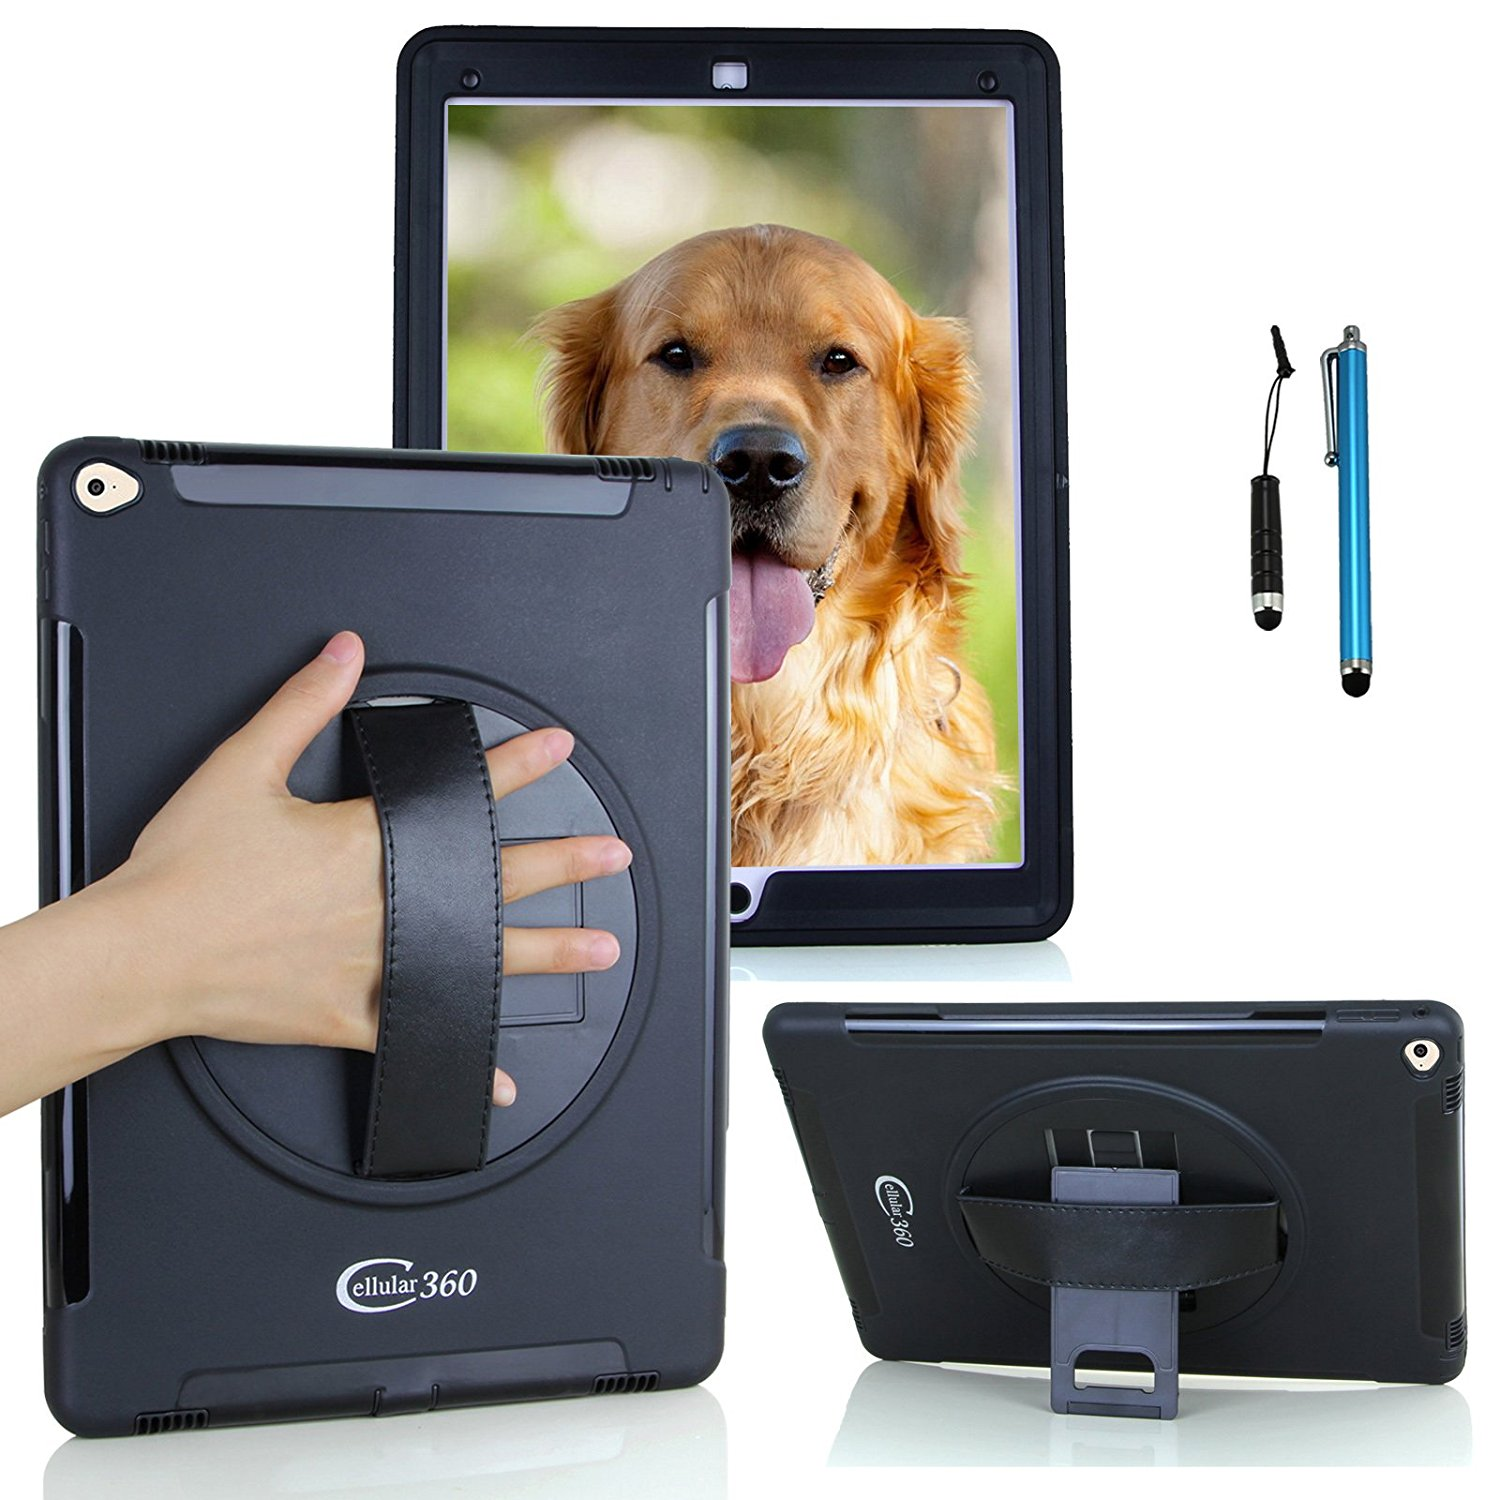 Cellular360 Apple iPad Air 2 Case with a Slide-out Kickstand an.. Free Shipping